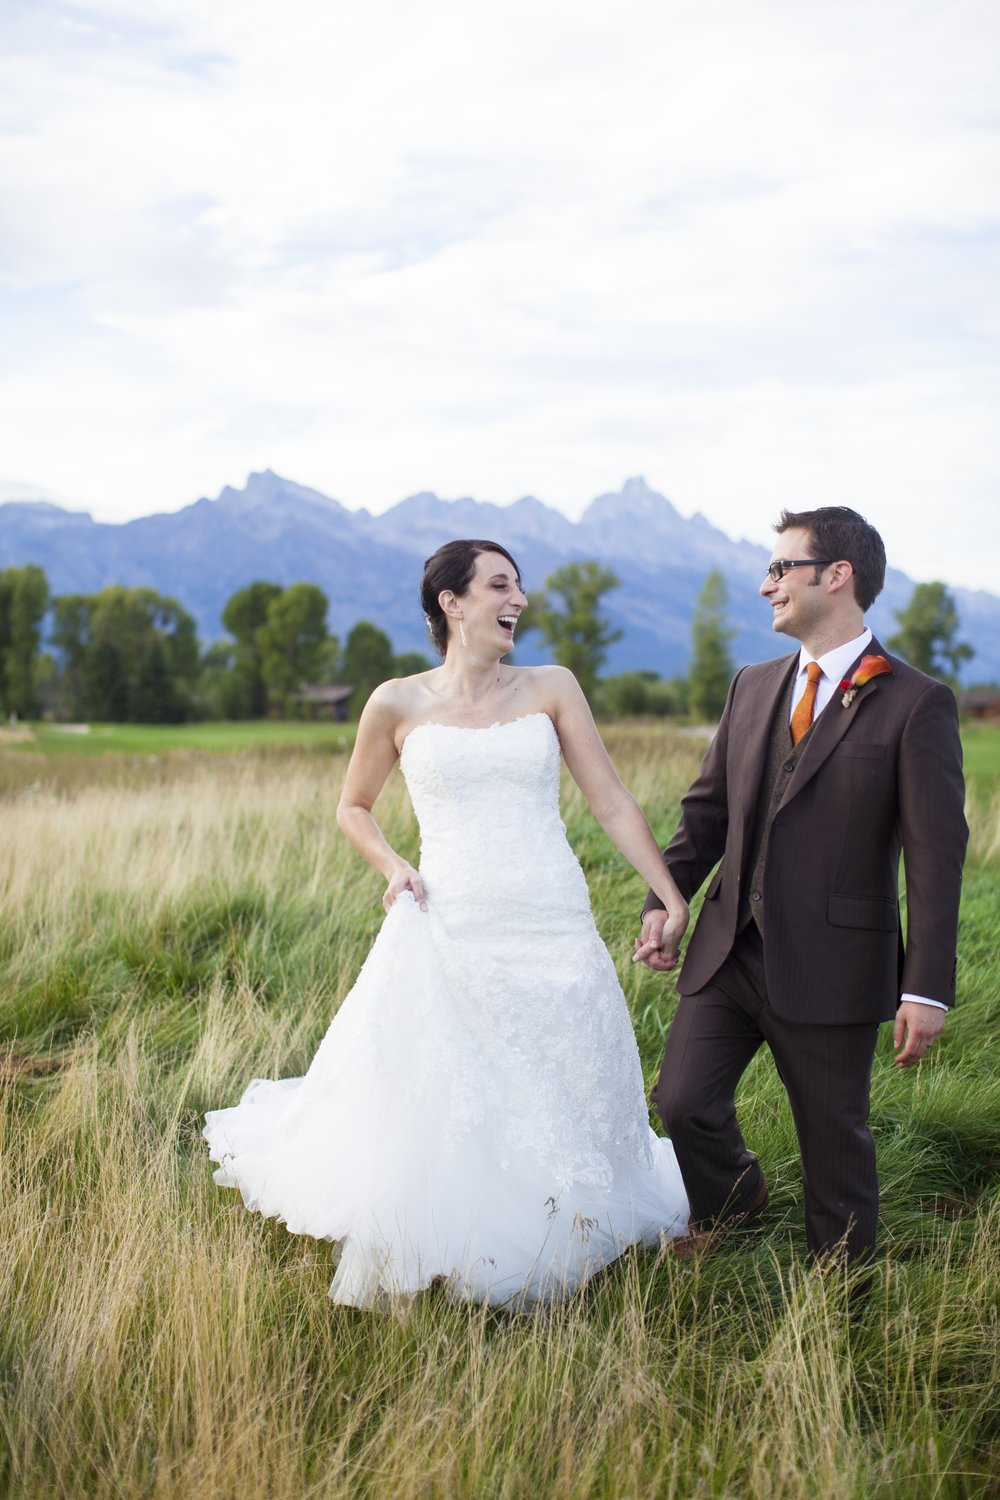 Harrison Wedding Jackson Hole 2013_1918.JPG